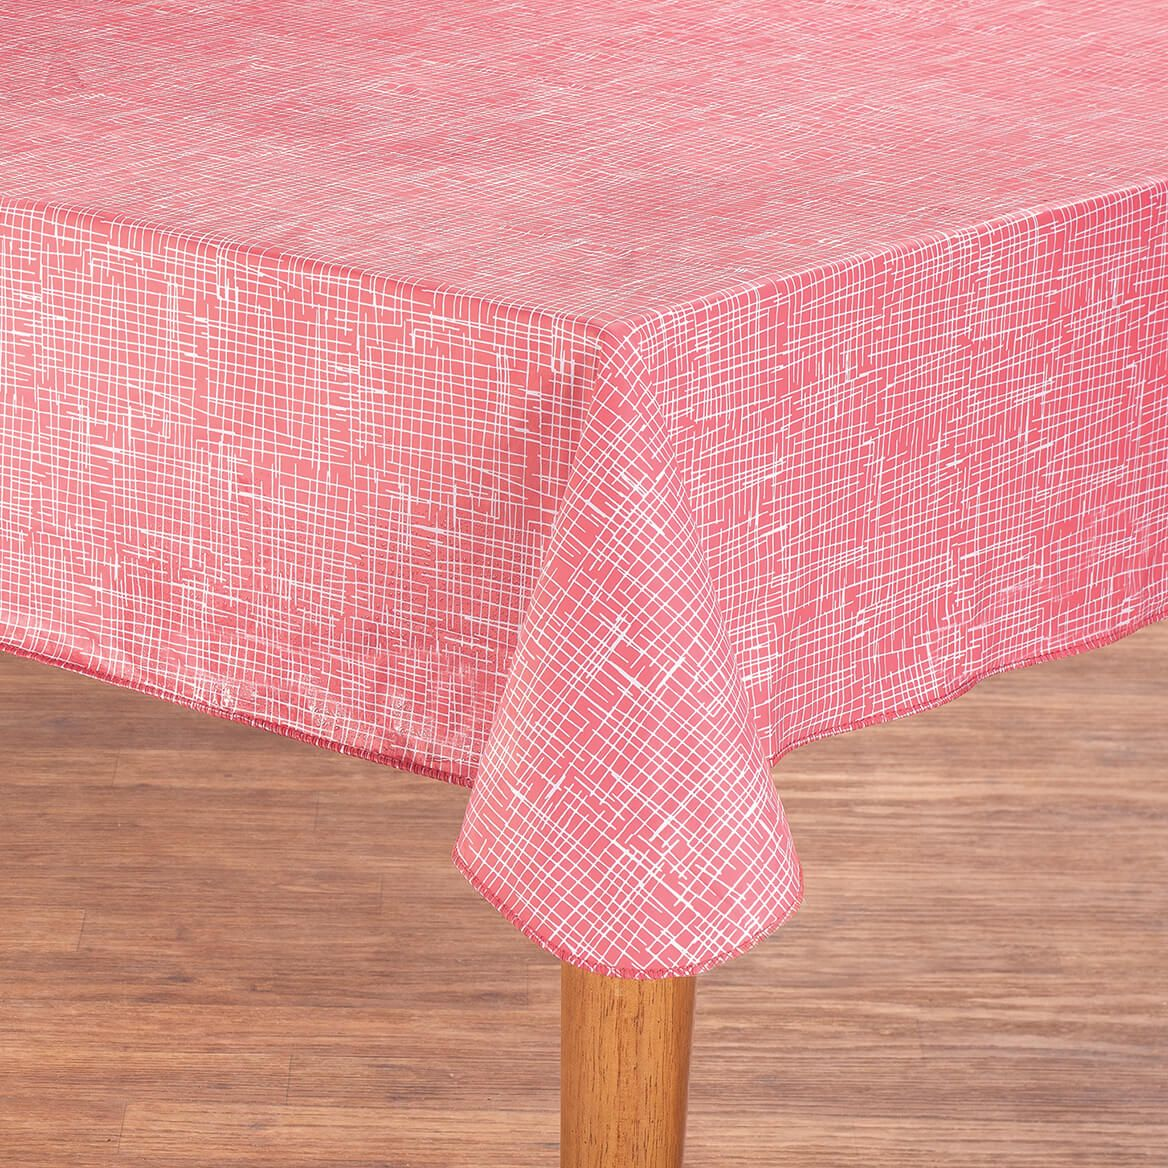 Summer Straw Vinyl Table Cover by Home Style Kitchen-367014